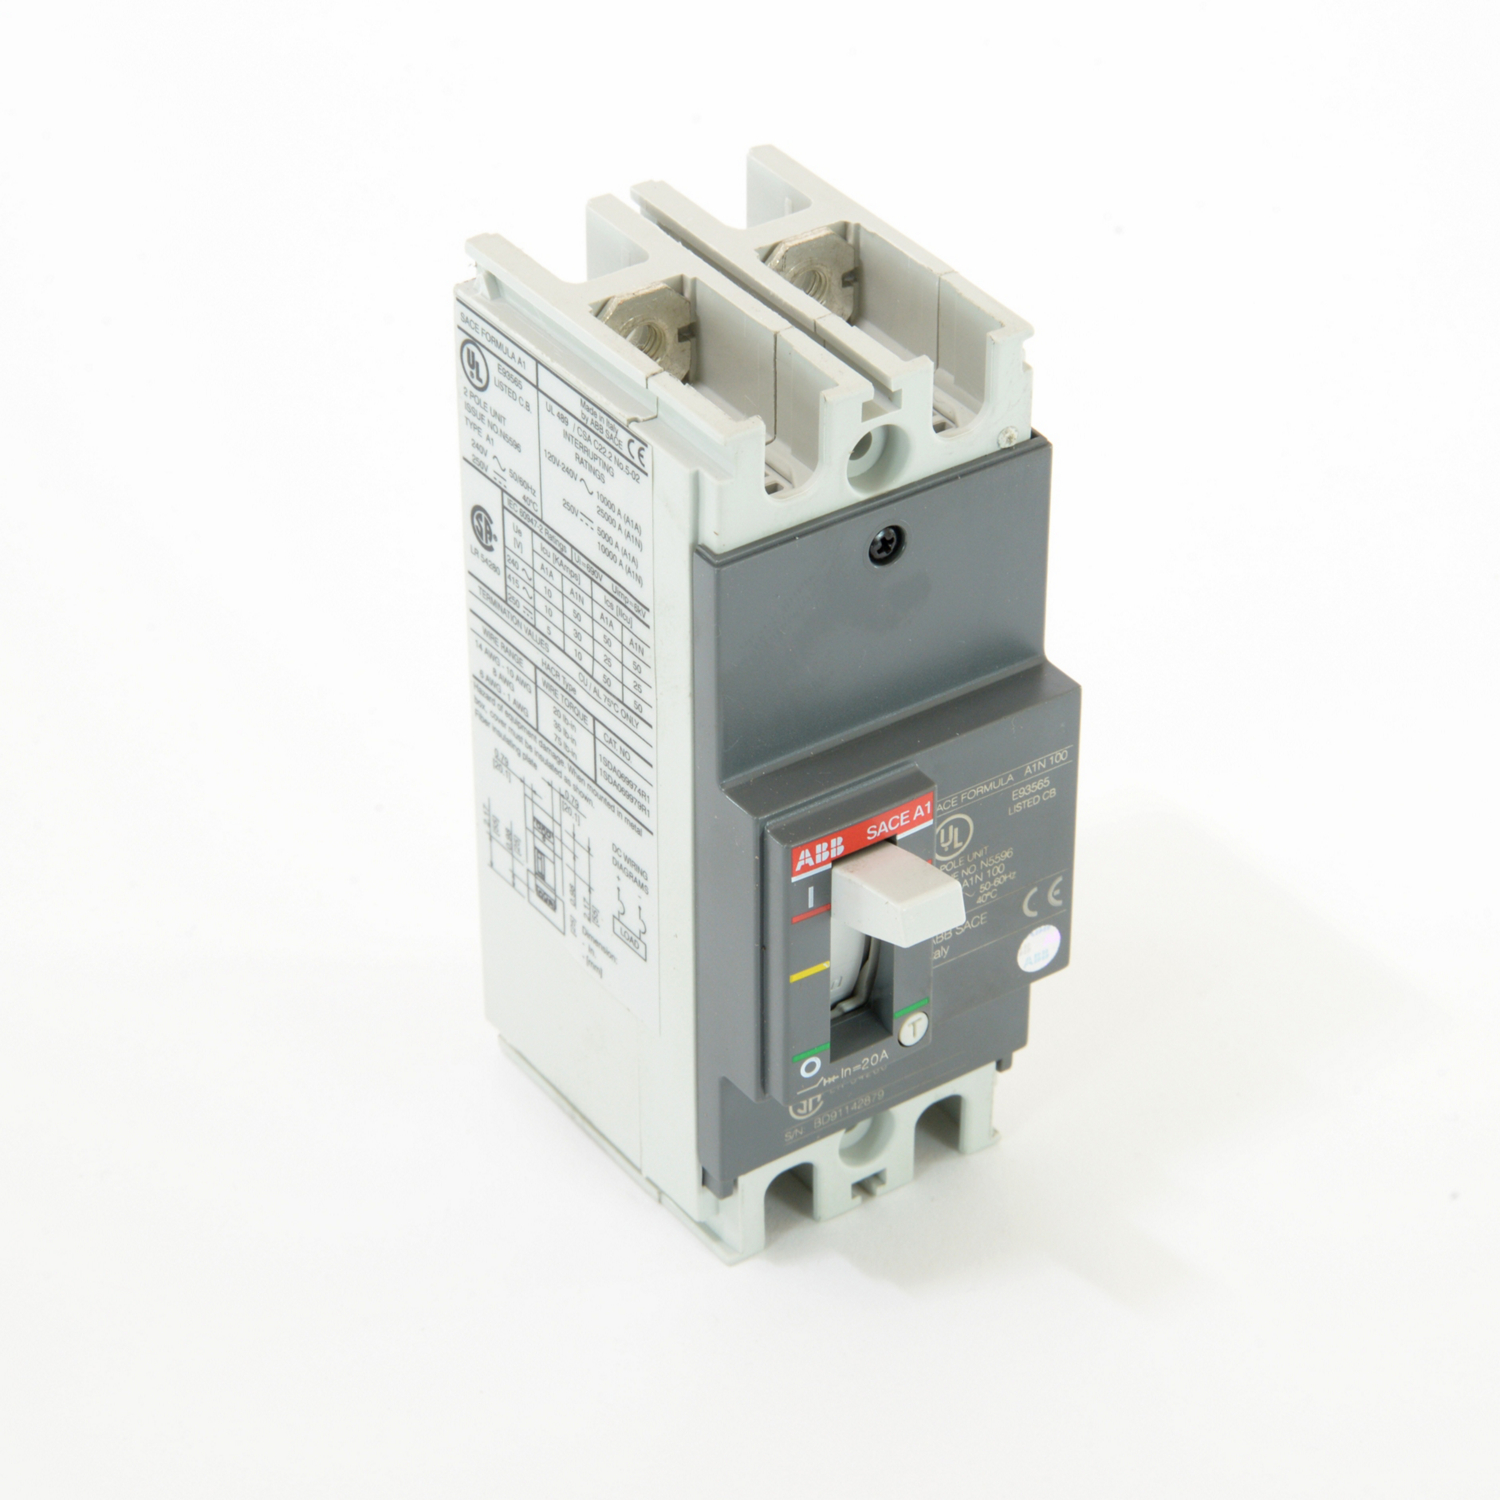 ABB A1N020TW-2 Molded Case Circuit Breakrs